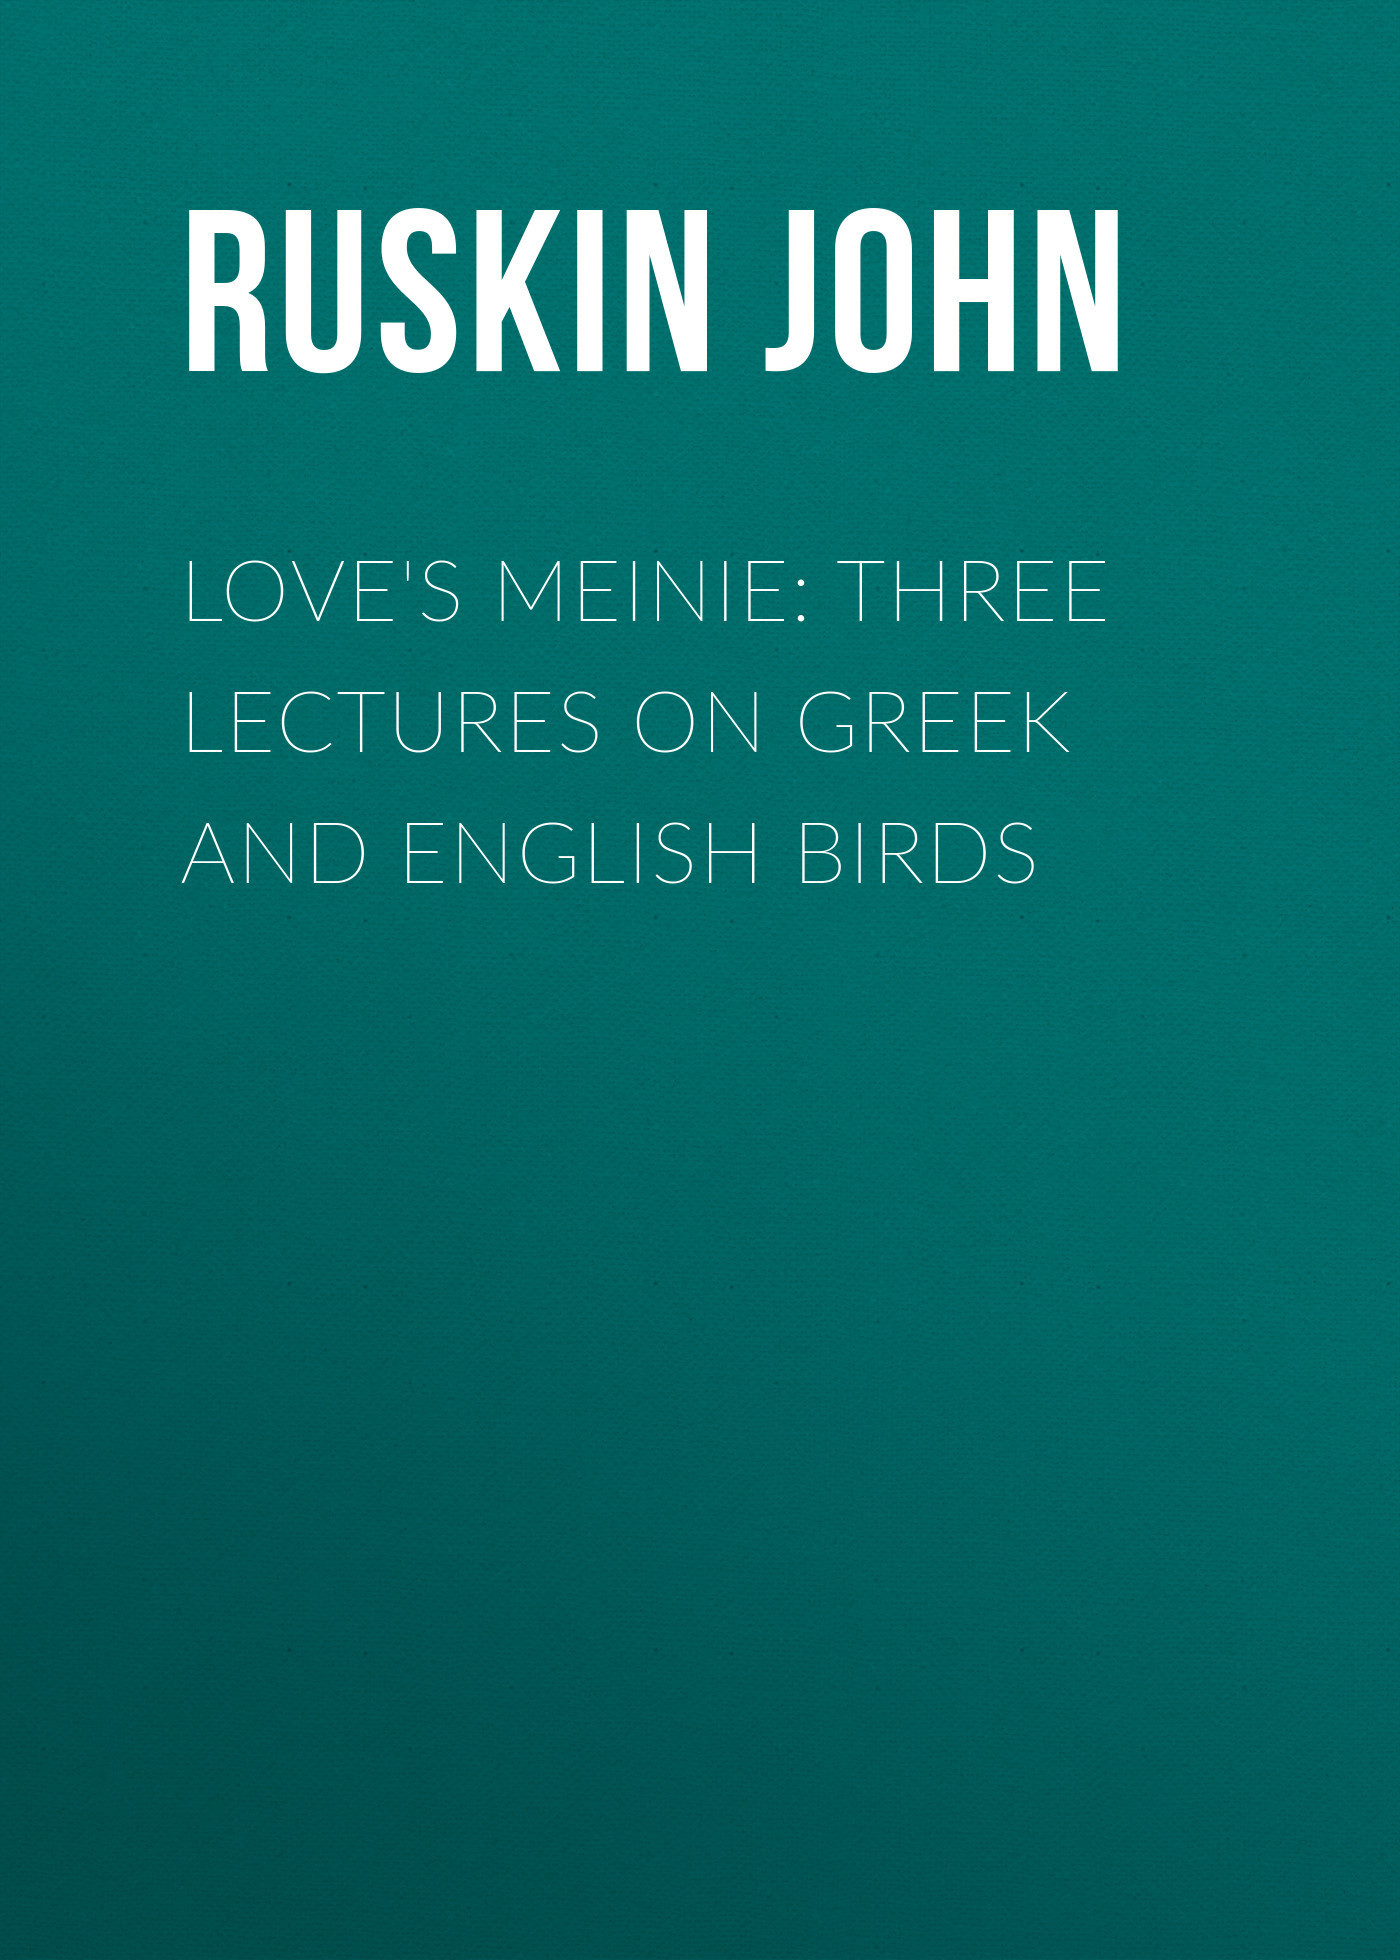 Ruskin John Love's Meinie: Three Lectures on Greek and English Birds kant s lectures on anthropology